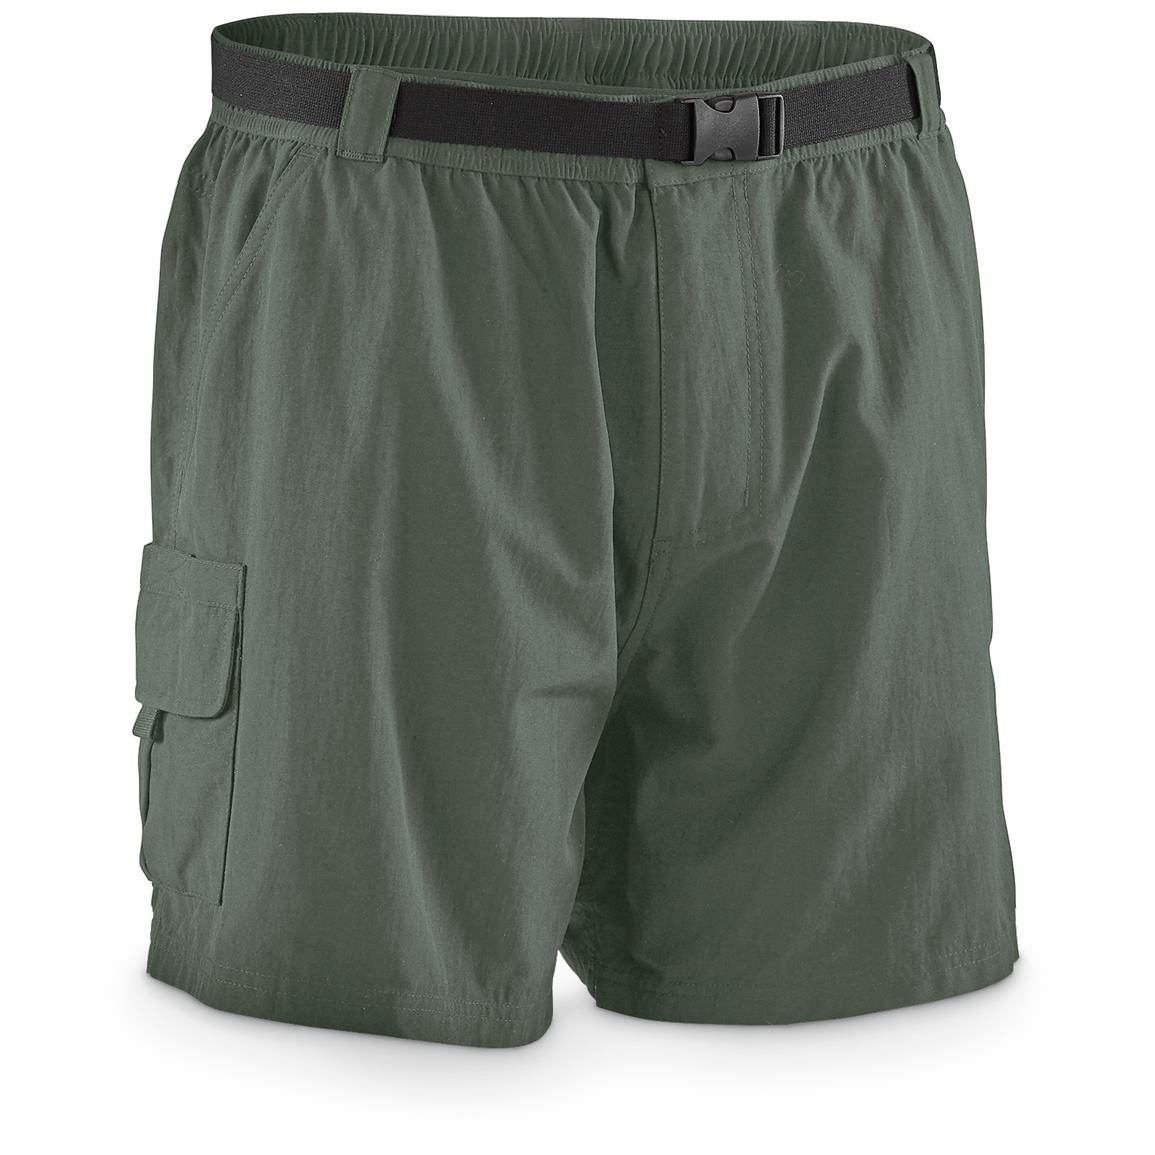 "Guide Gear Men's Cargo River Shorts, 6"" Inseam, Sage"